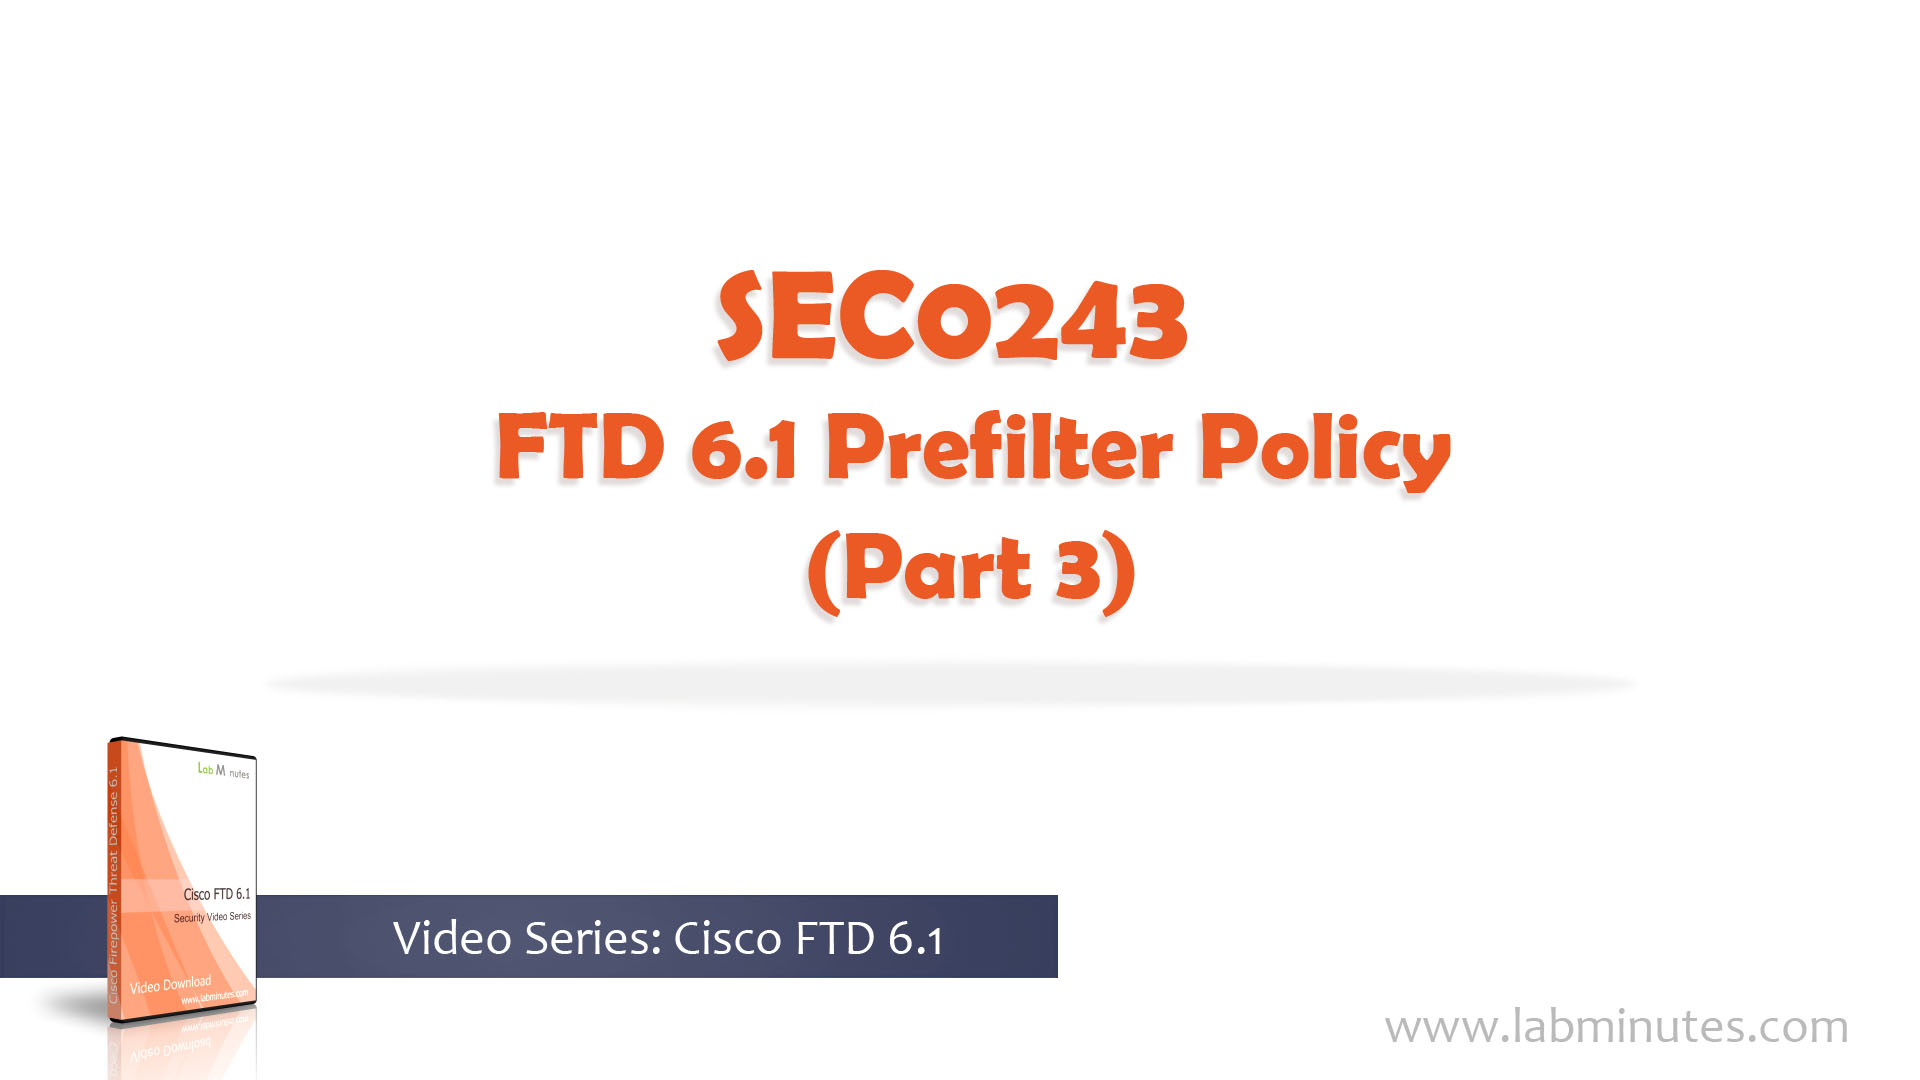 How to Configure FTD 6 1 Prefilter Policy (Part 3)